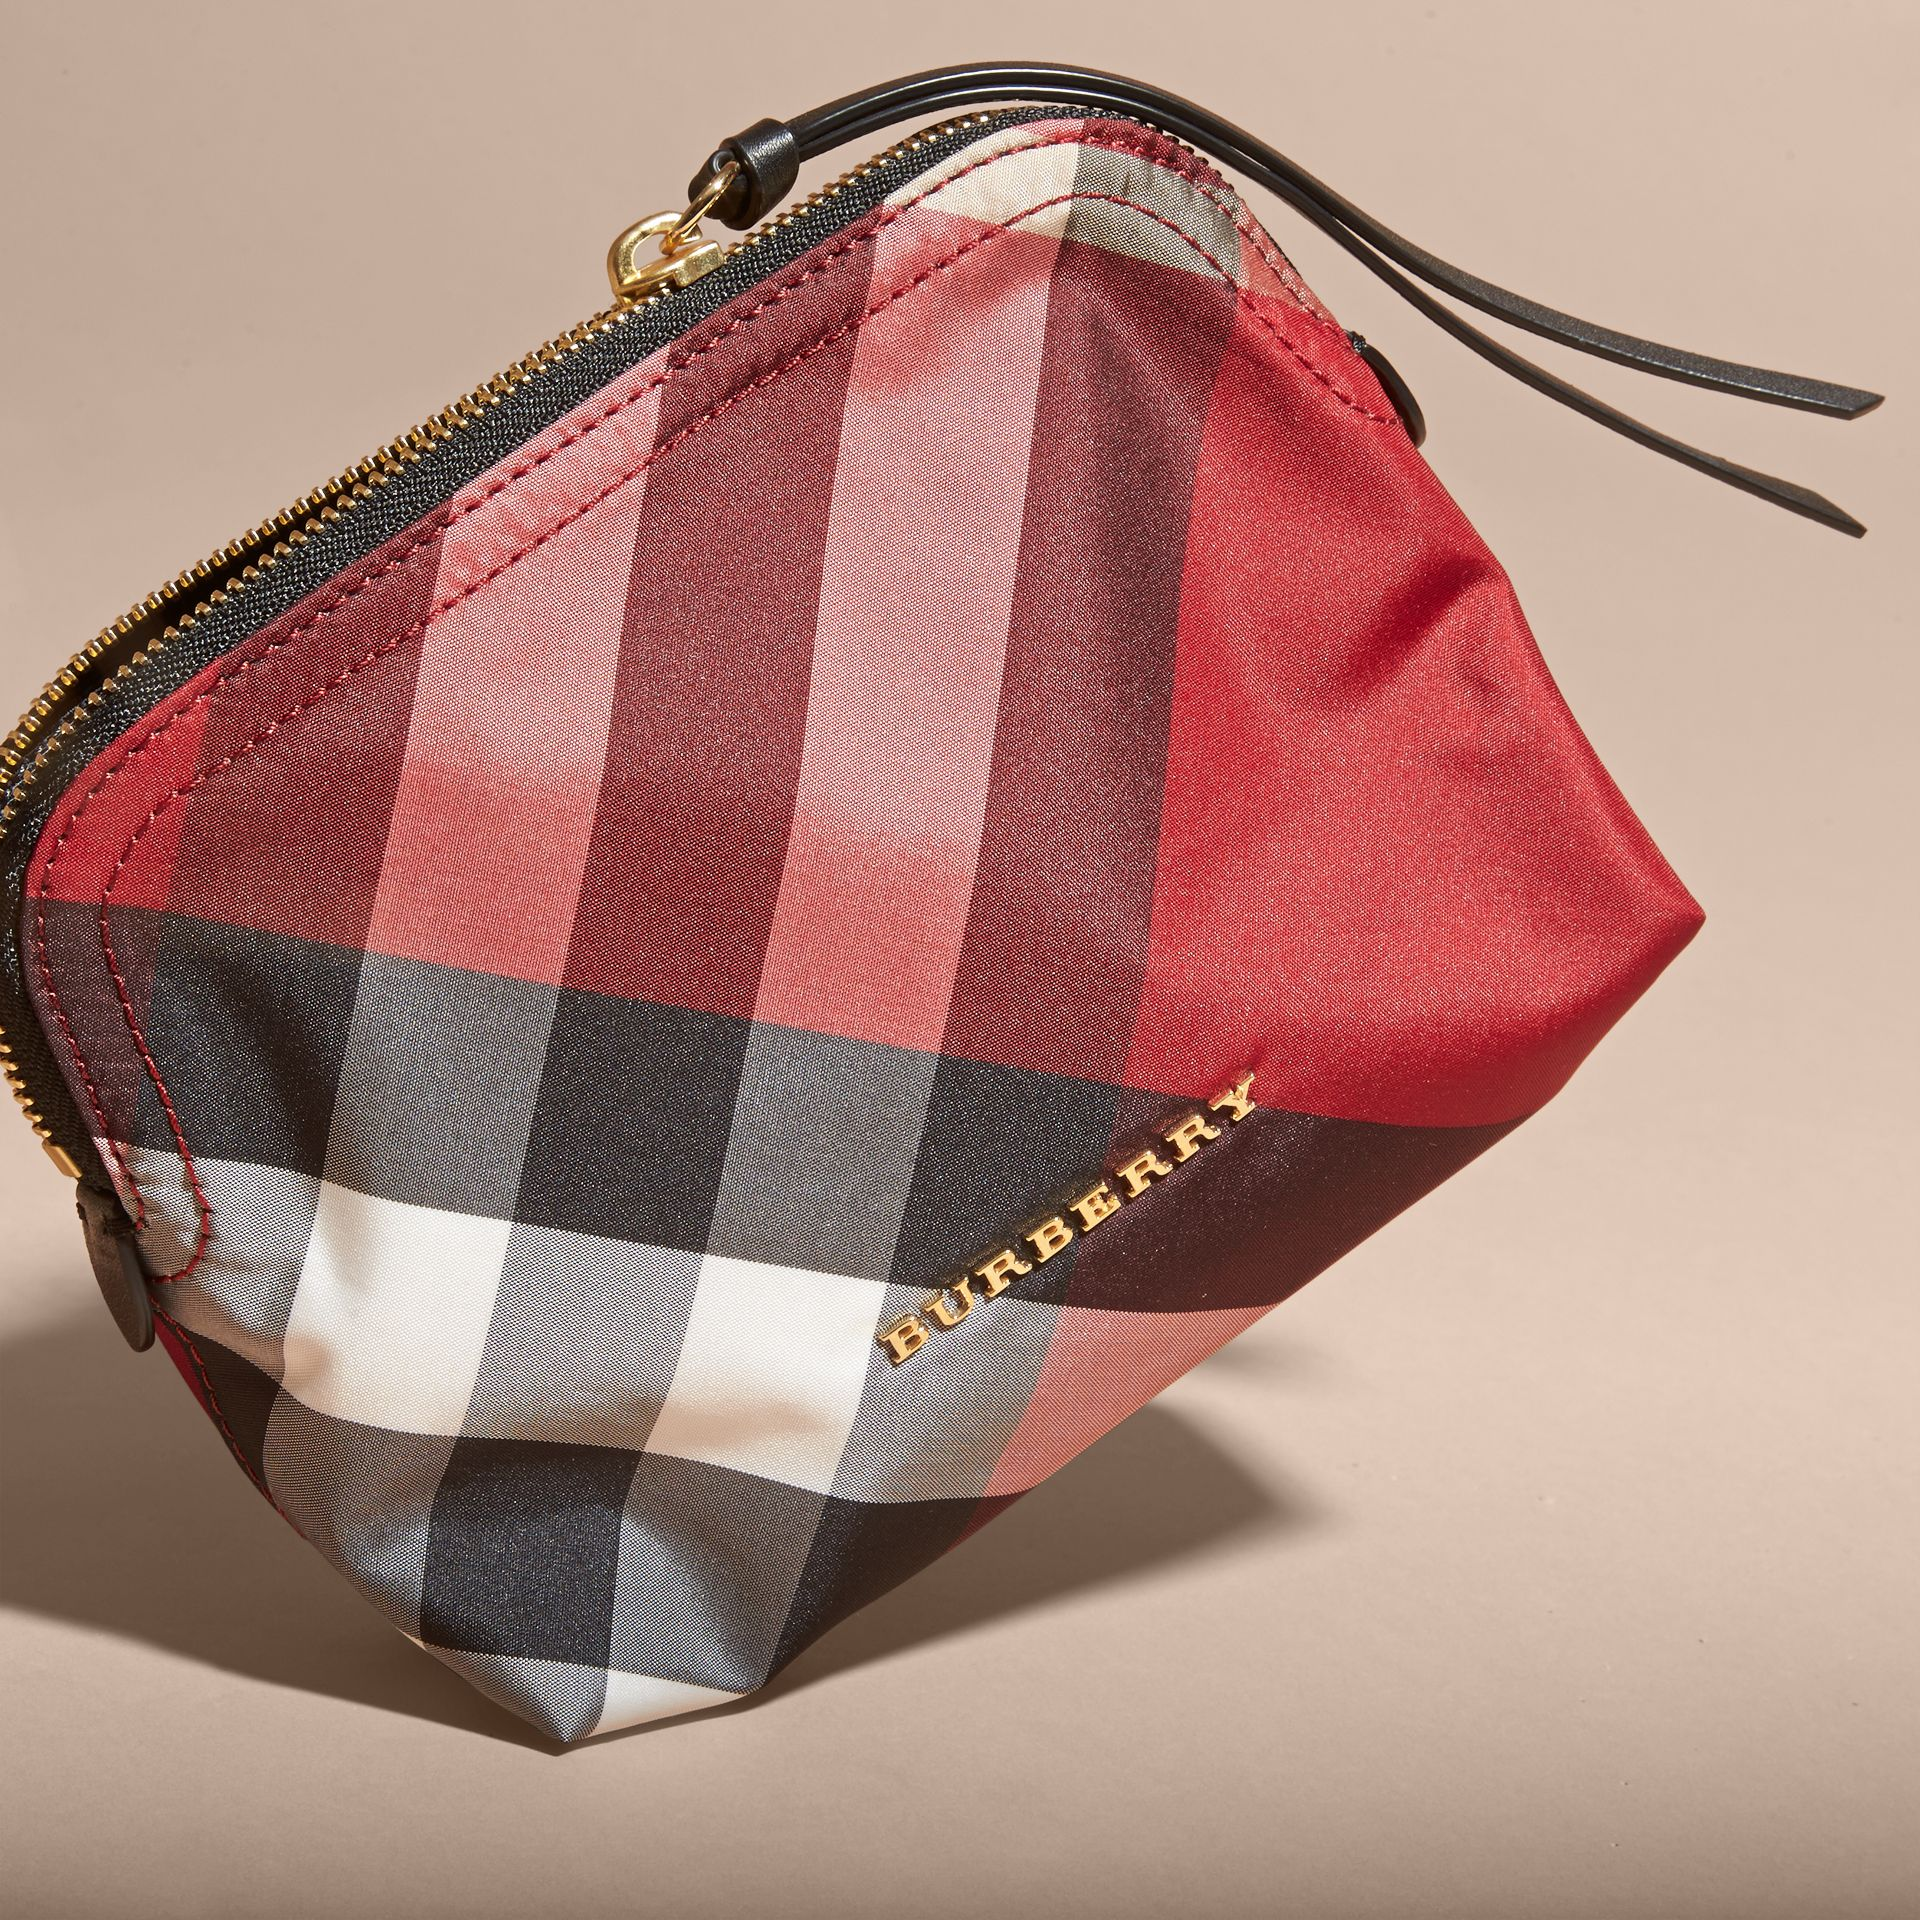 Medium Zip-top Check Technical Pouch in Parade Red - Women | Burberry - gallery image 3